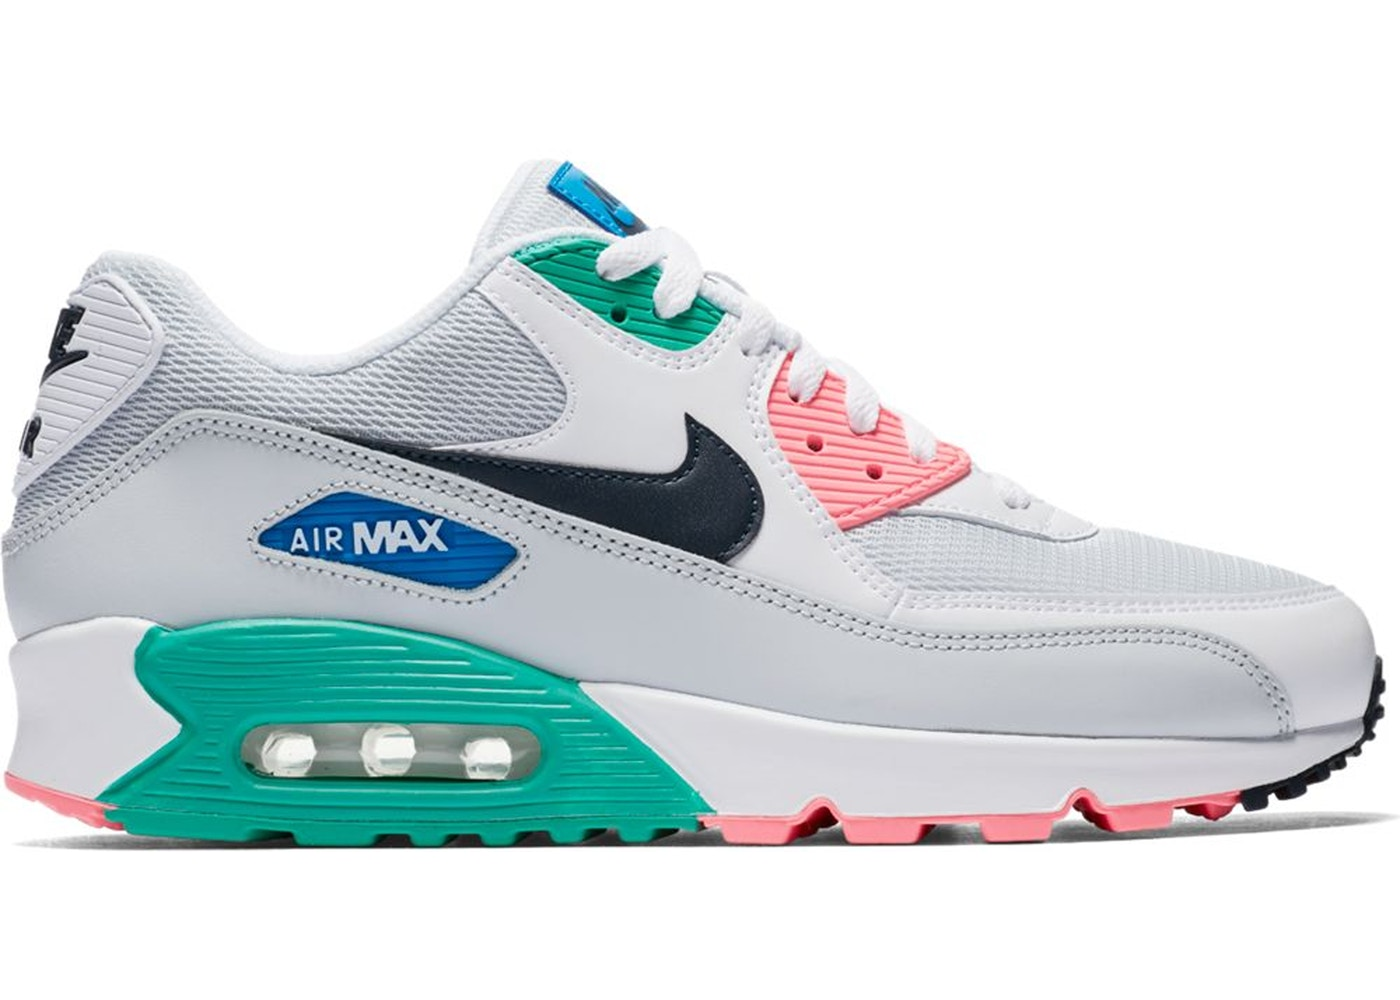 nouveau concept 2772c 624d6 Air Max 90 South Beach